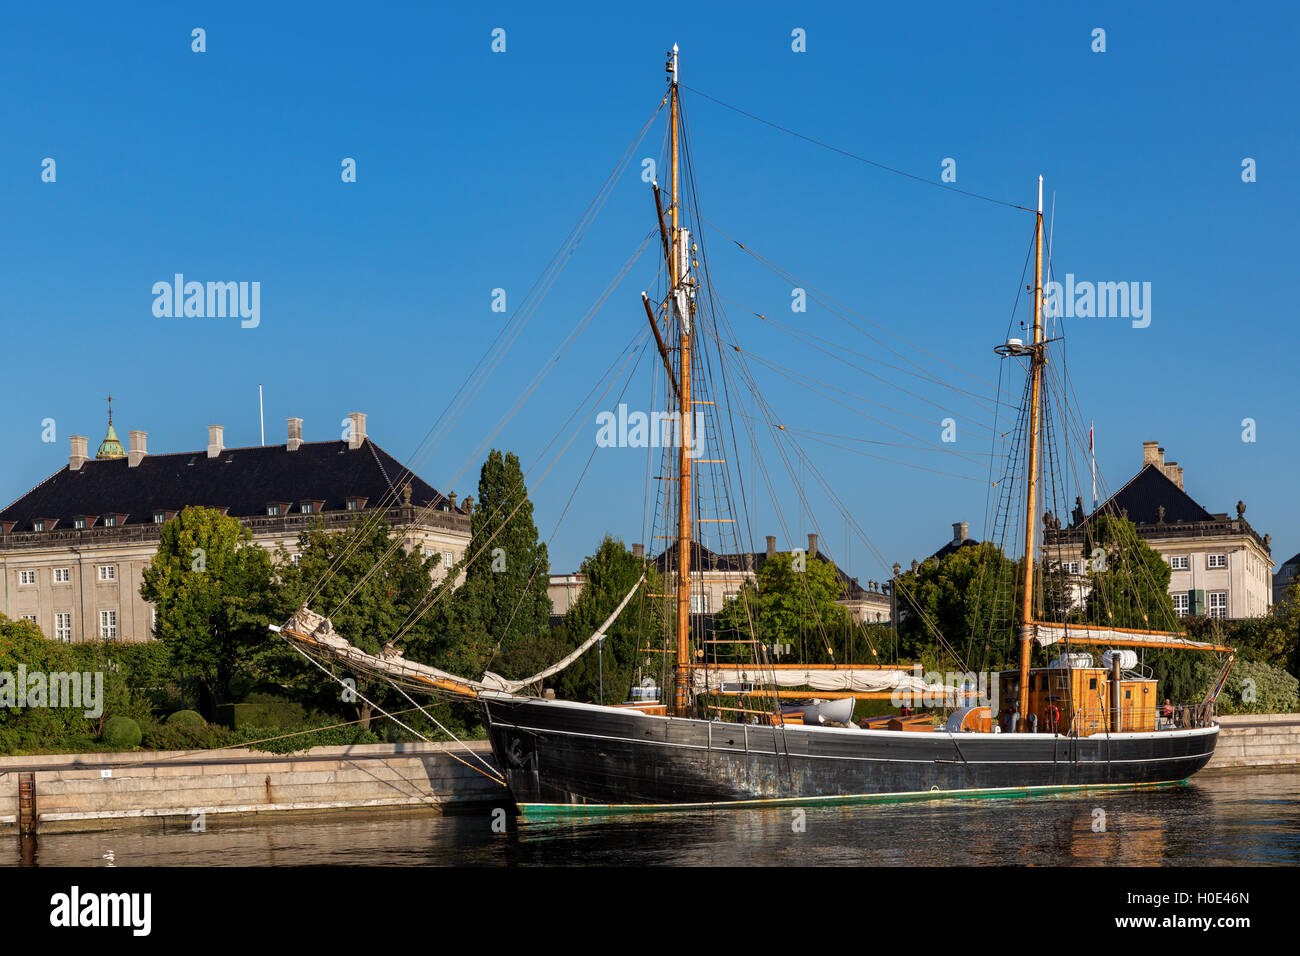 Old wooden sail ship at dock near Amalienborg Palace, Copenhagen, Denmark - Stock Image